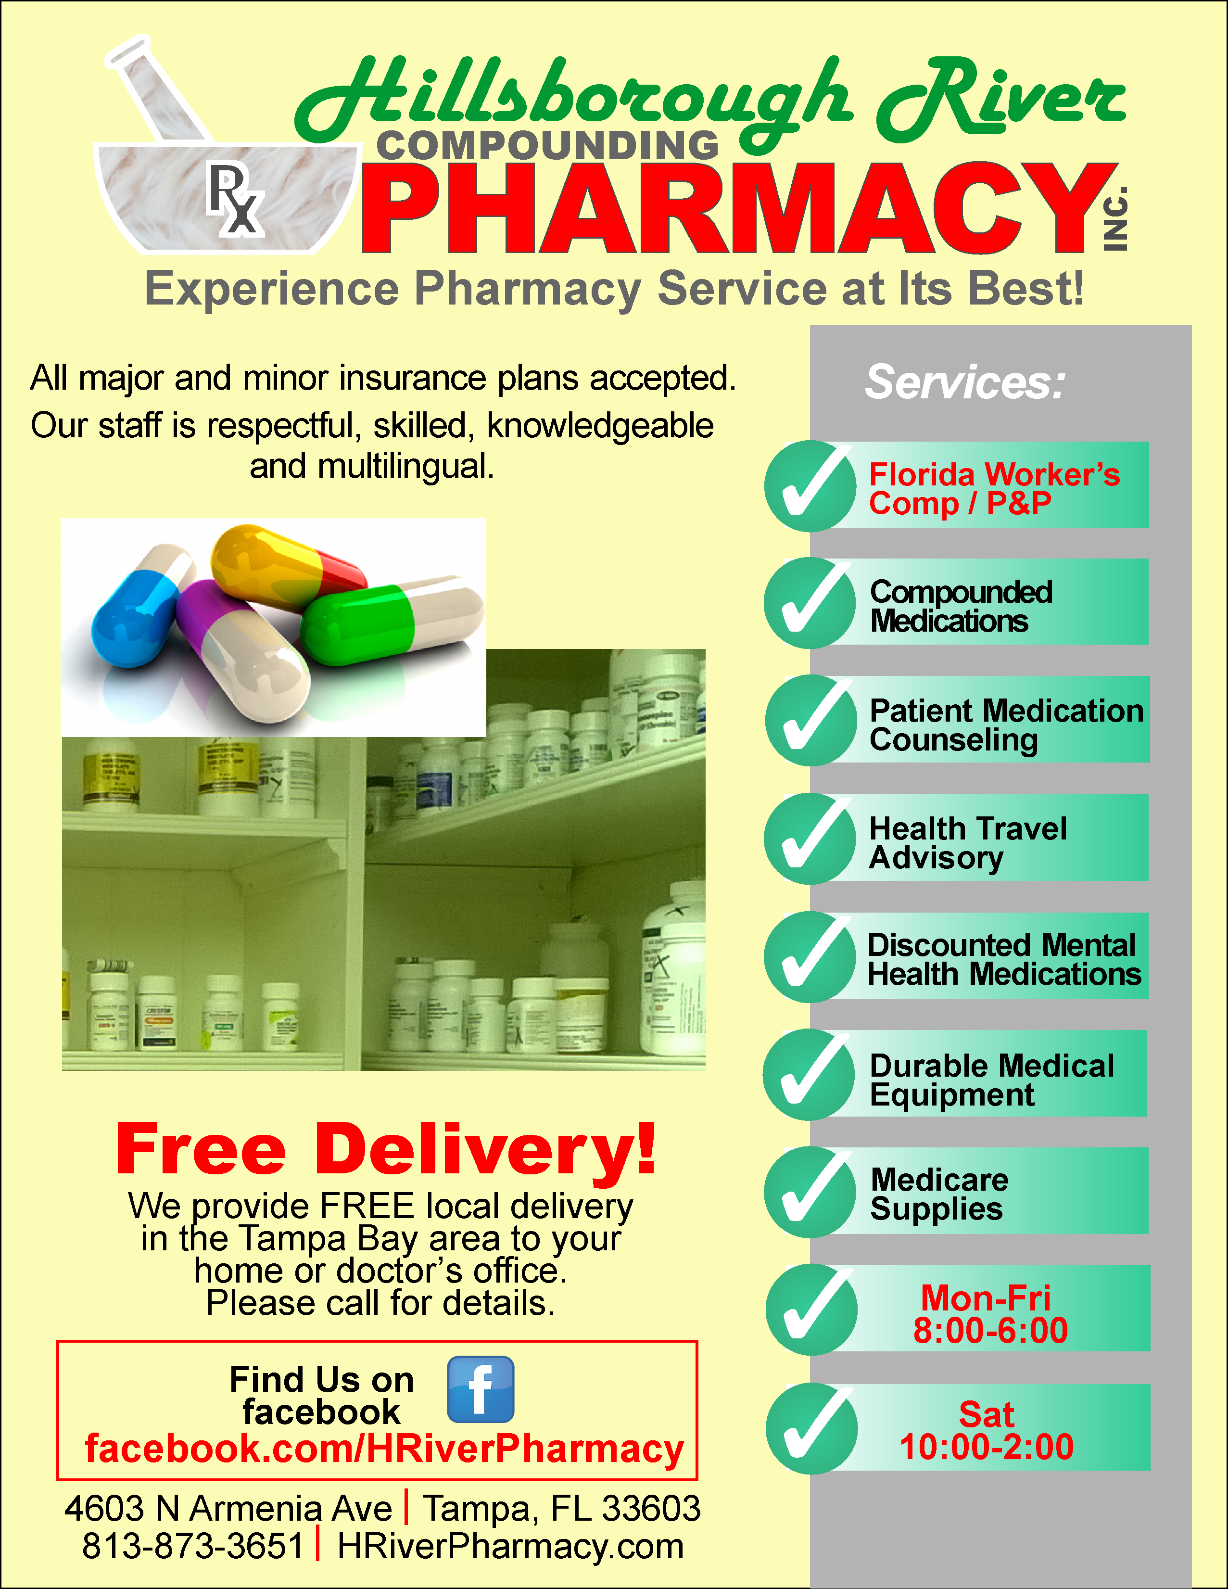 Our list of services: Insurance accepted, free delivery, compounded medications, prescriptions, patient consultations